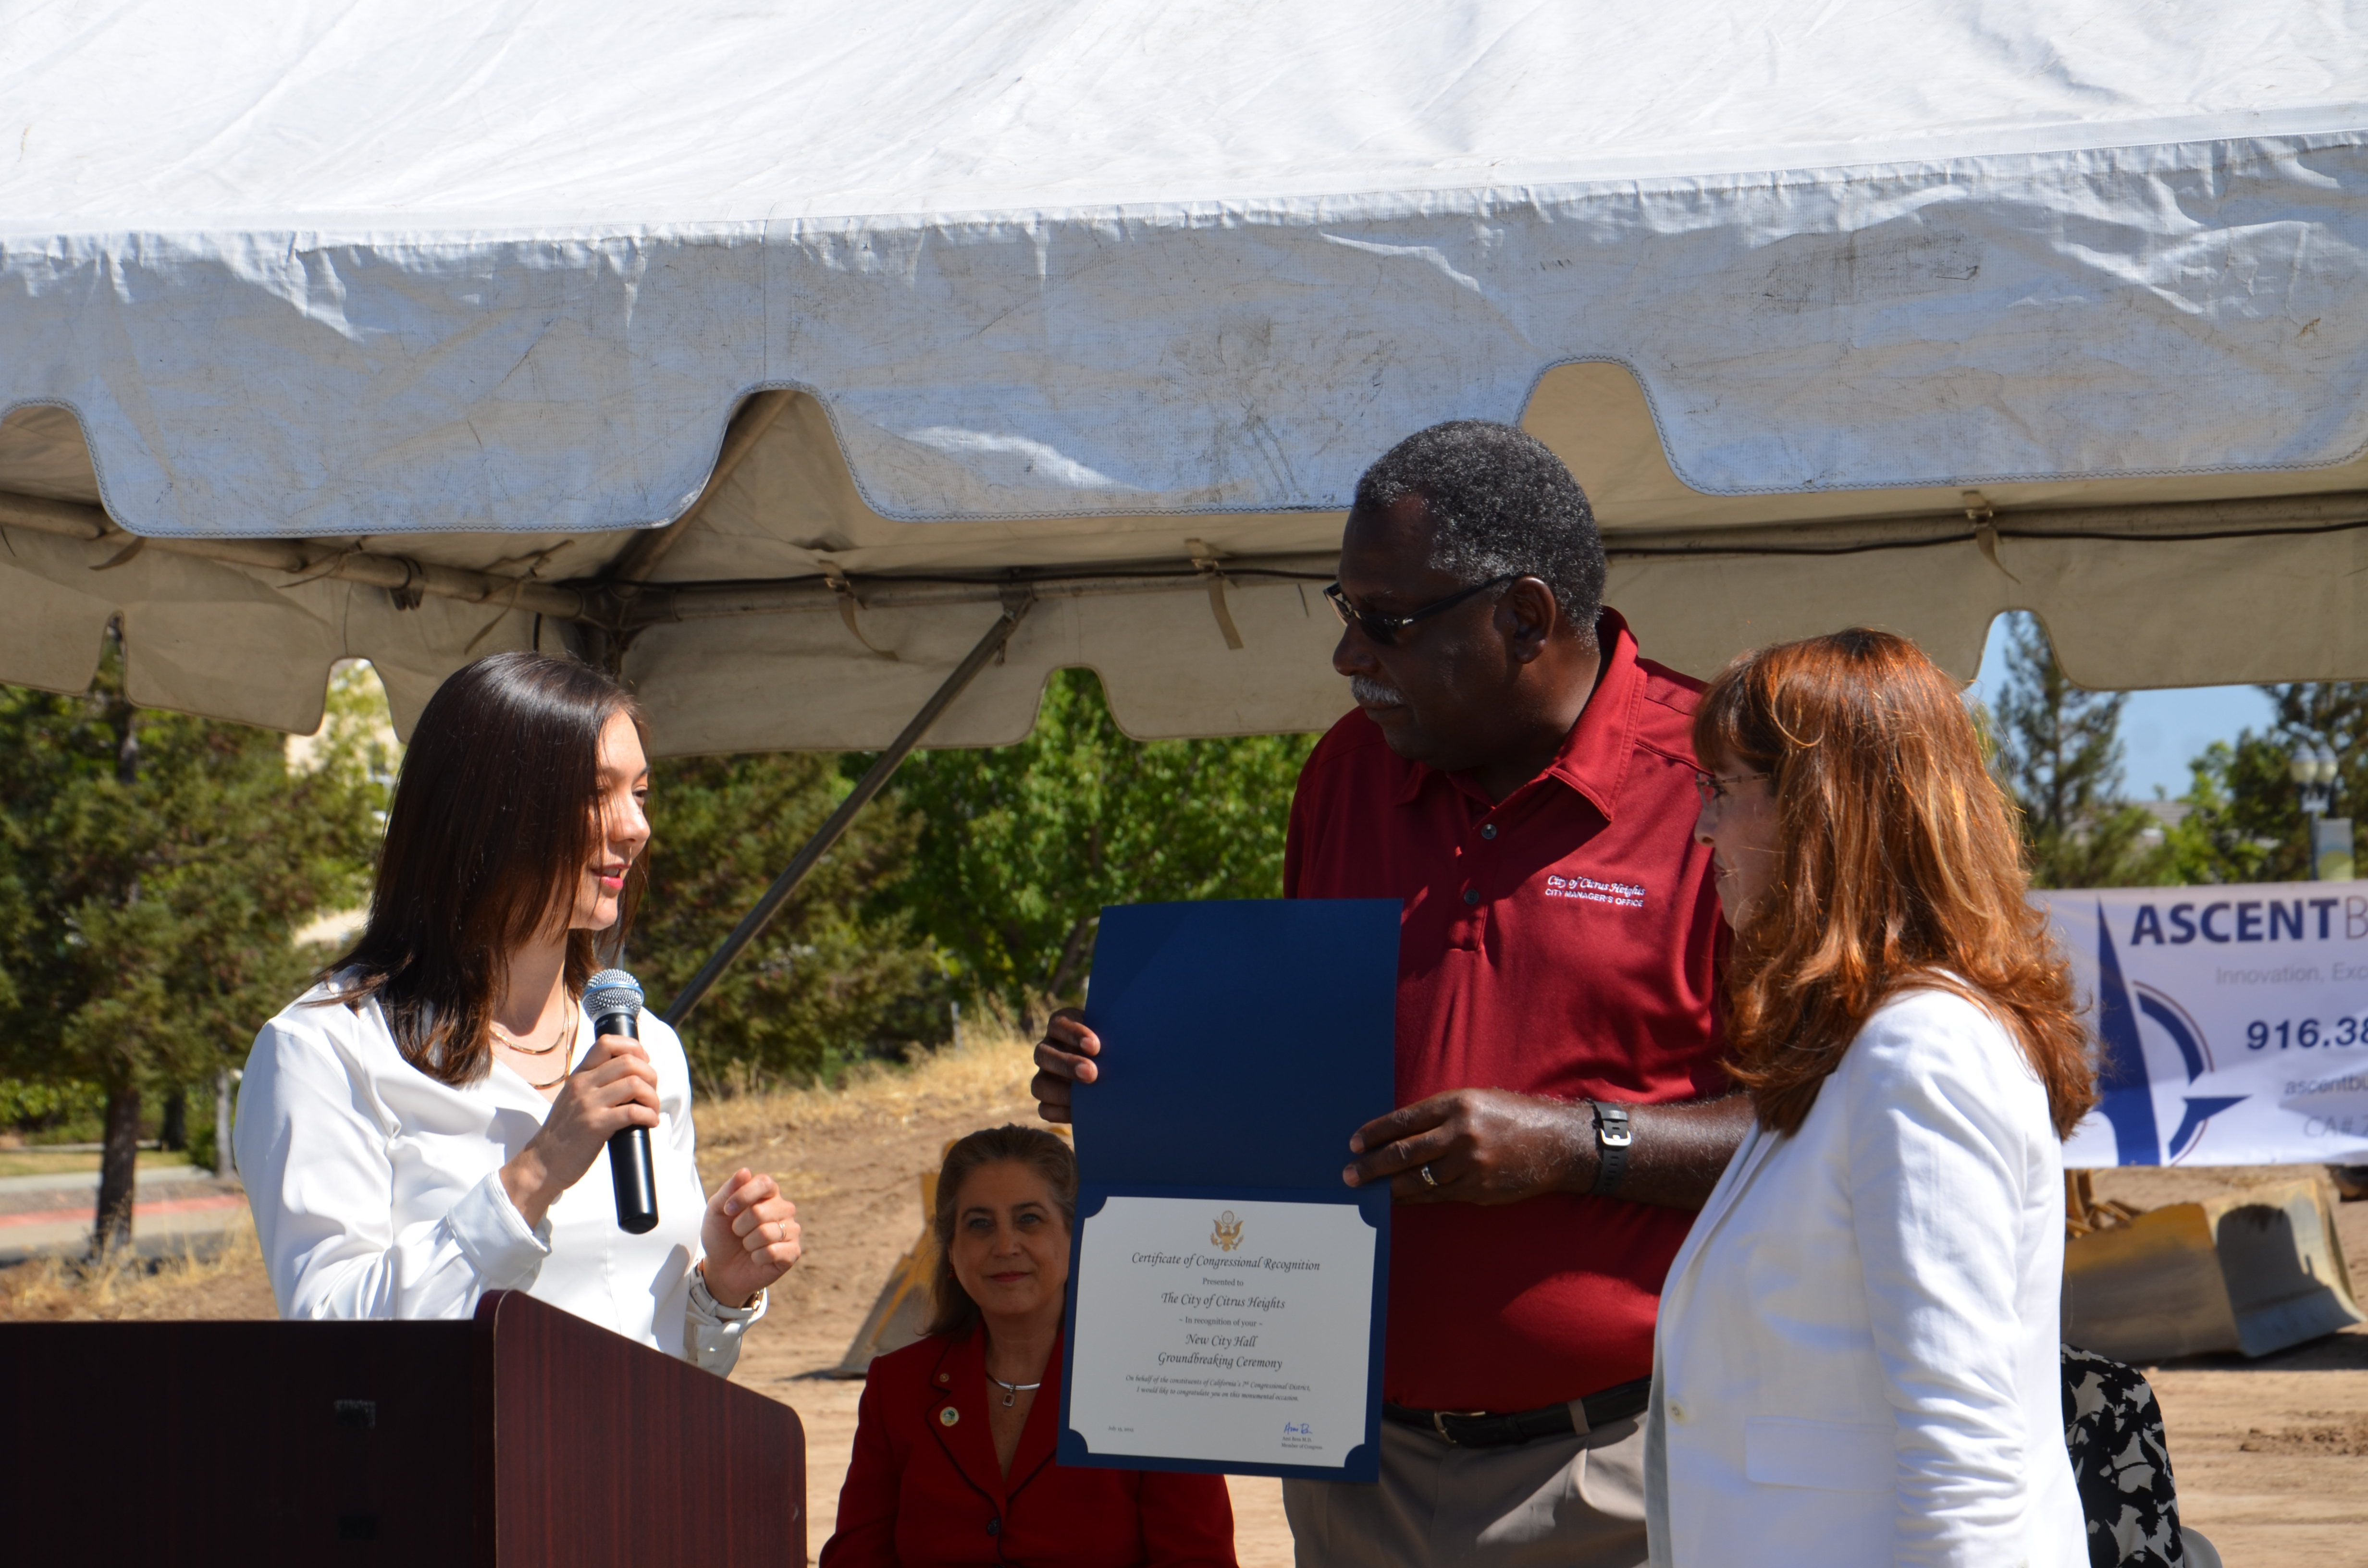 The Certificate of Congressional Recognition is presented to the City of Citrus Heights